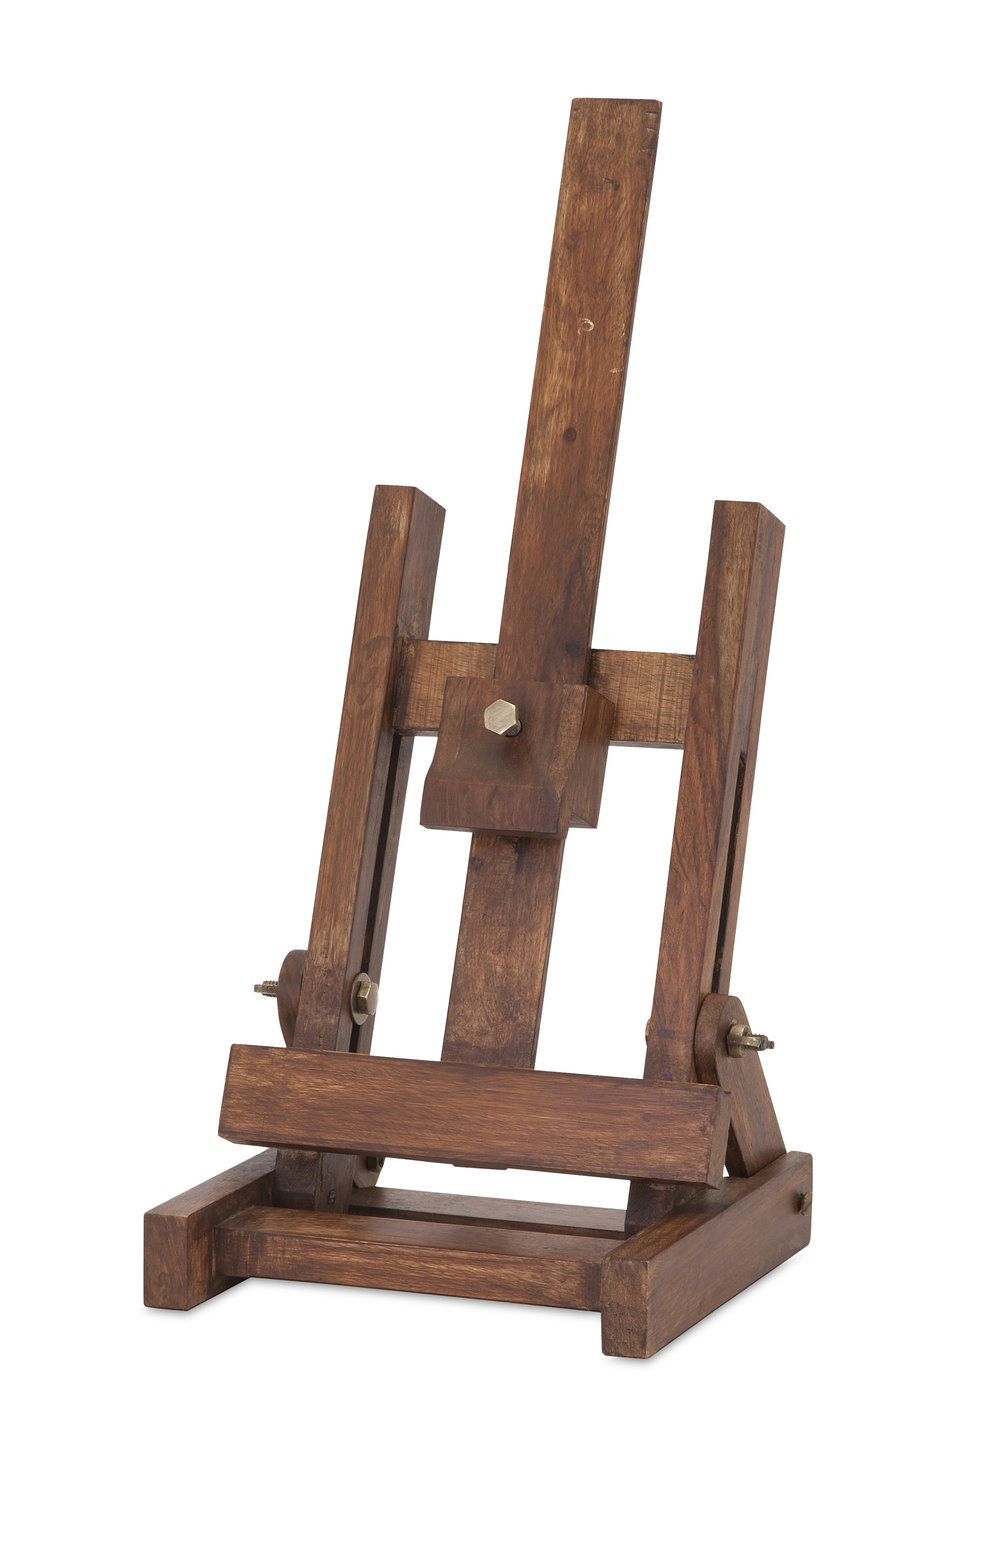 EASELS - Display your own masterpiece with wood or iron artist easels.